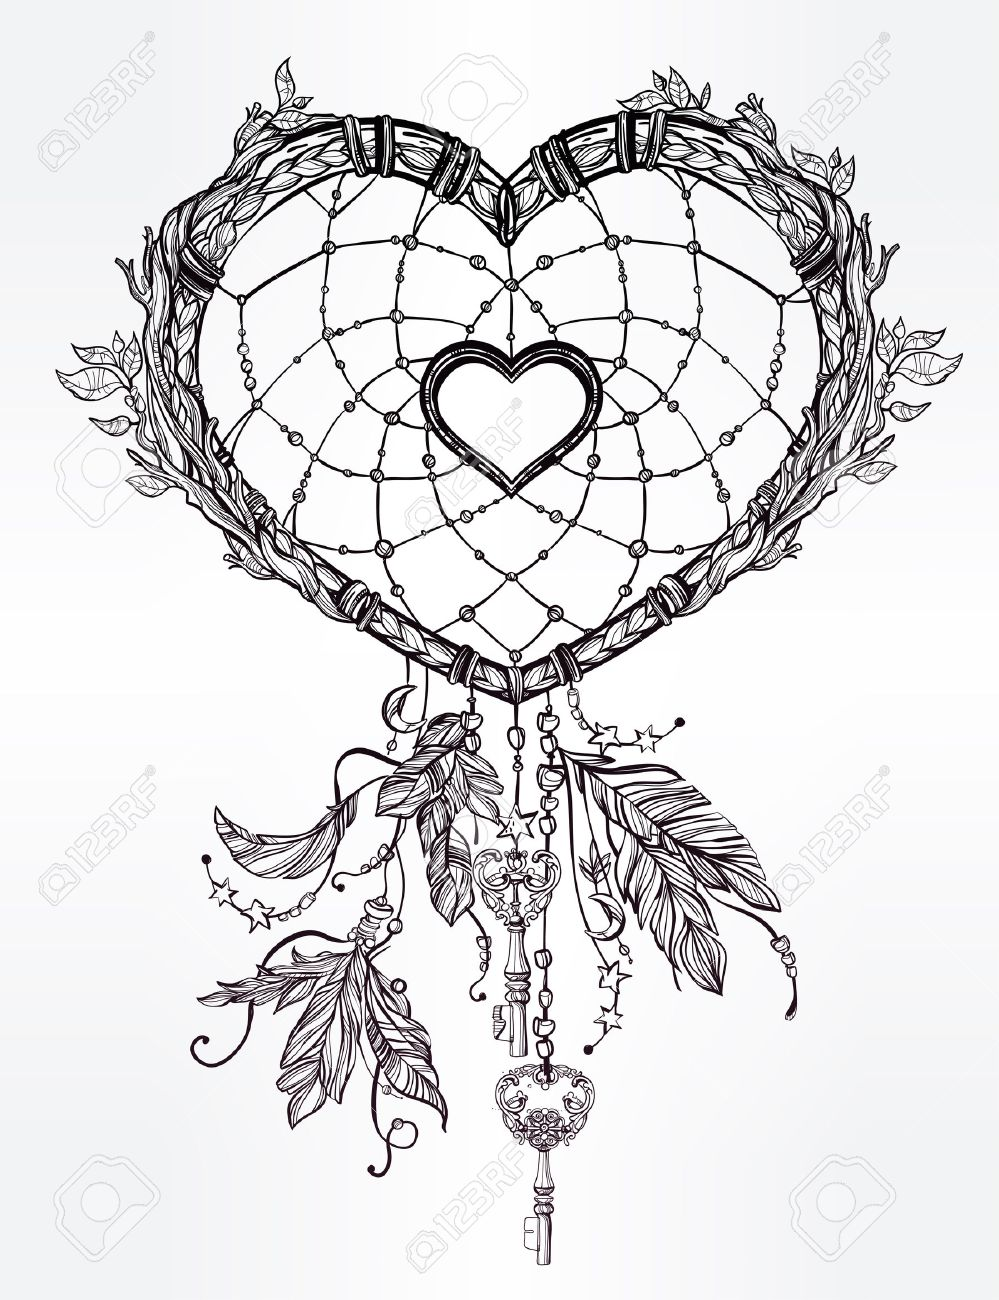 999x1300 Hand Drawn Romantic Drawing Of A Heart Shaped Dream Catcher